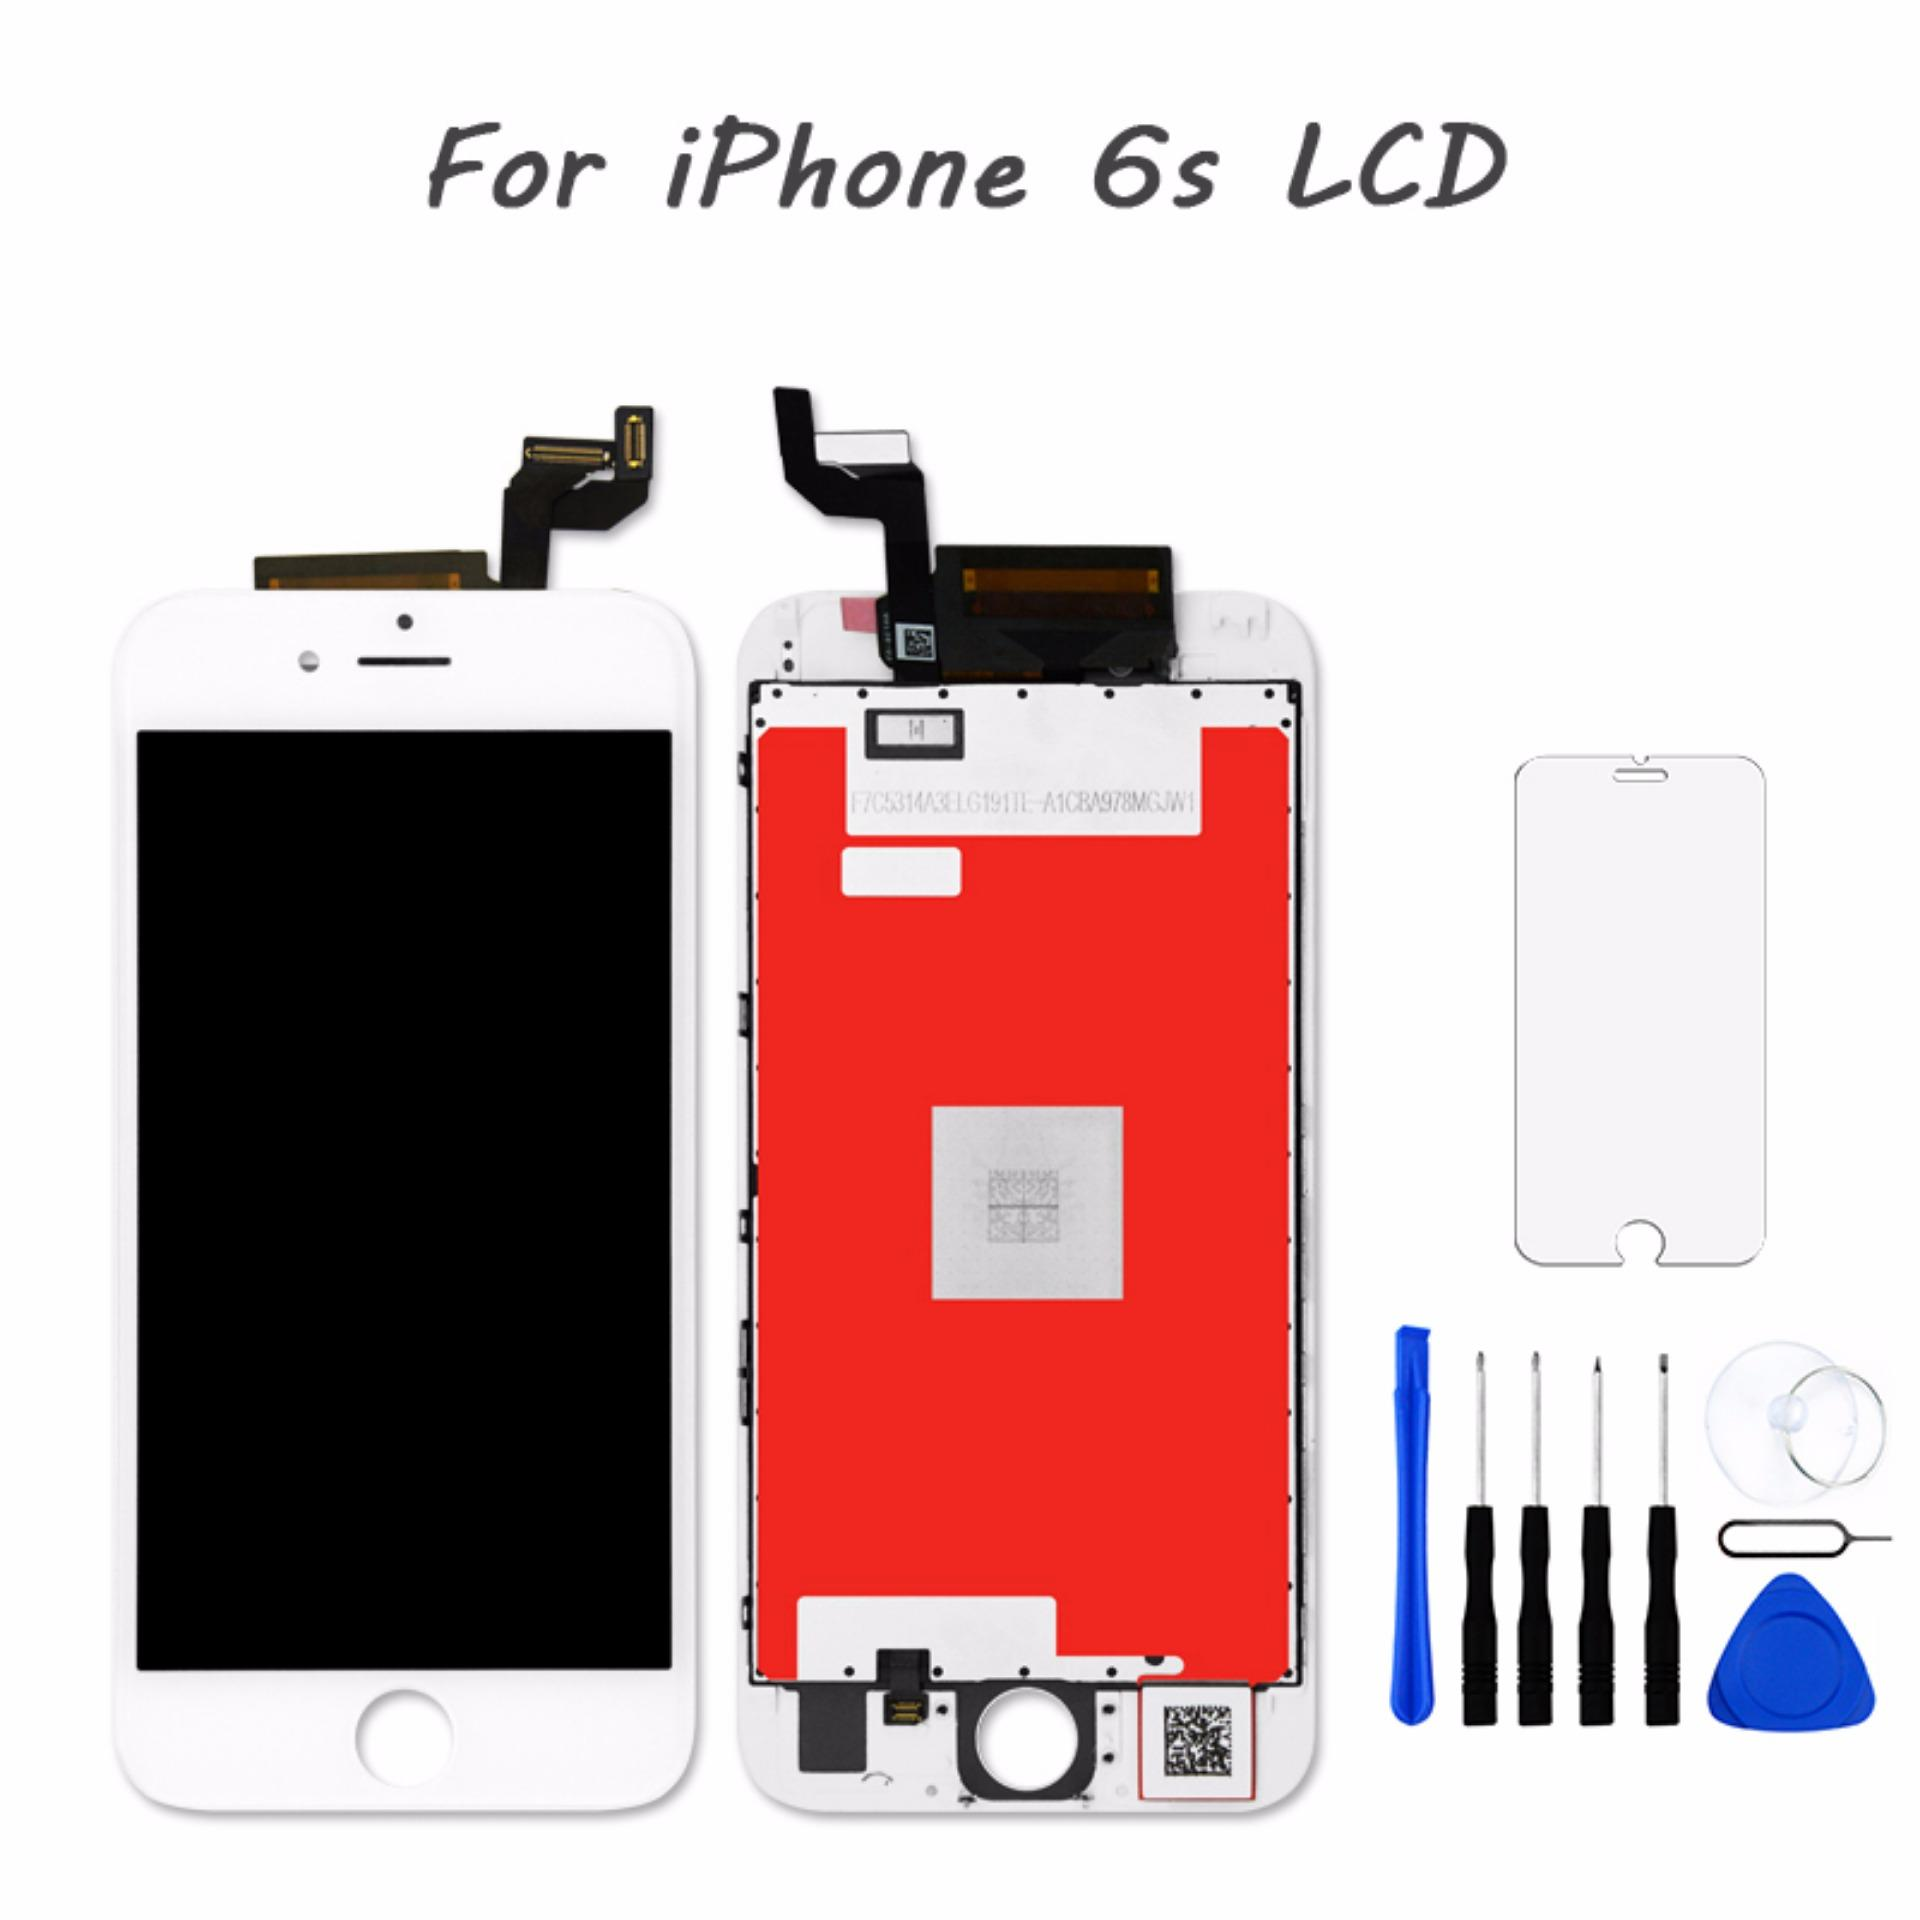 Buy Sell Cheapest Lcd Touch Digitizer Best Quality Product Deals Touchscreen Samsung Galaxy J1 2016 J120 Aaa J120g Display Screen For Iphone 6s Assembly With Free Gifts Repair Tools